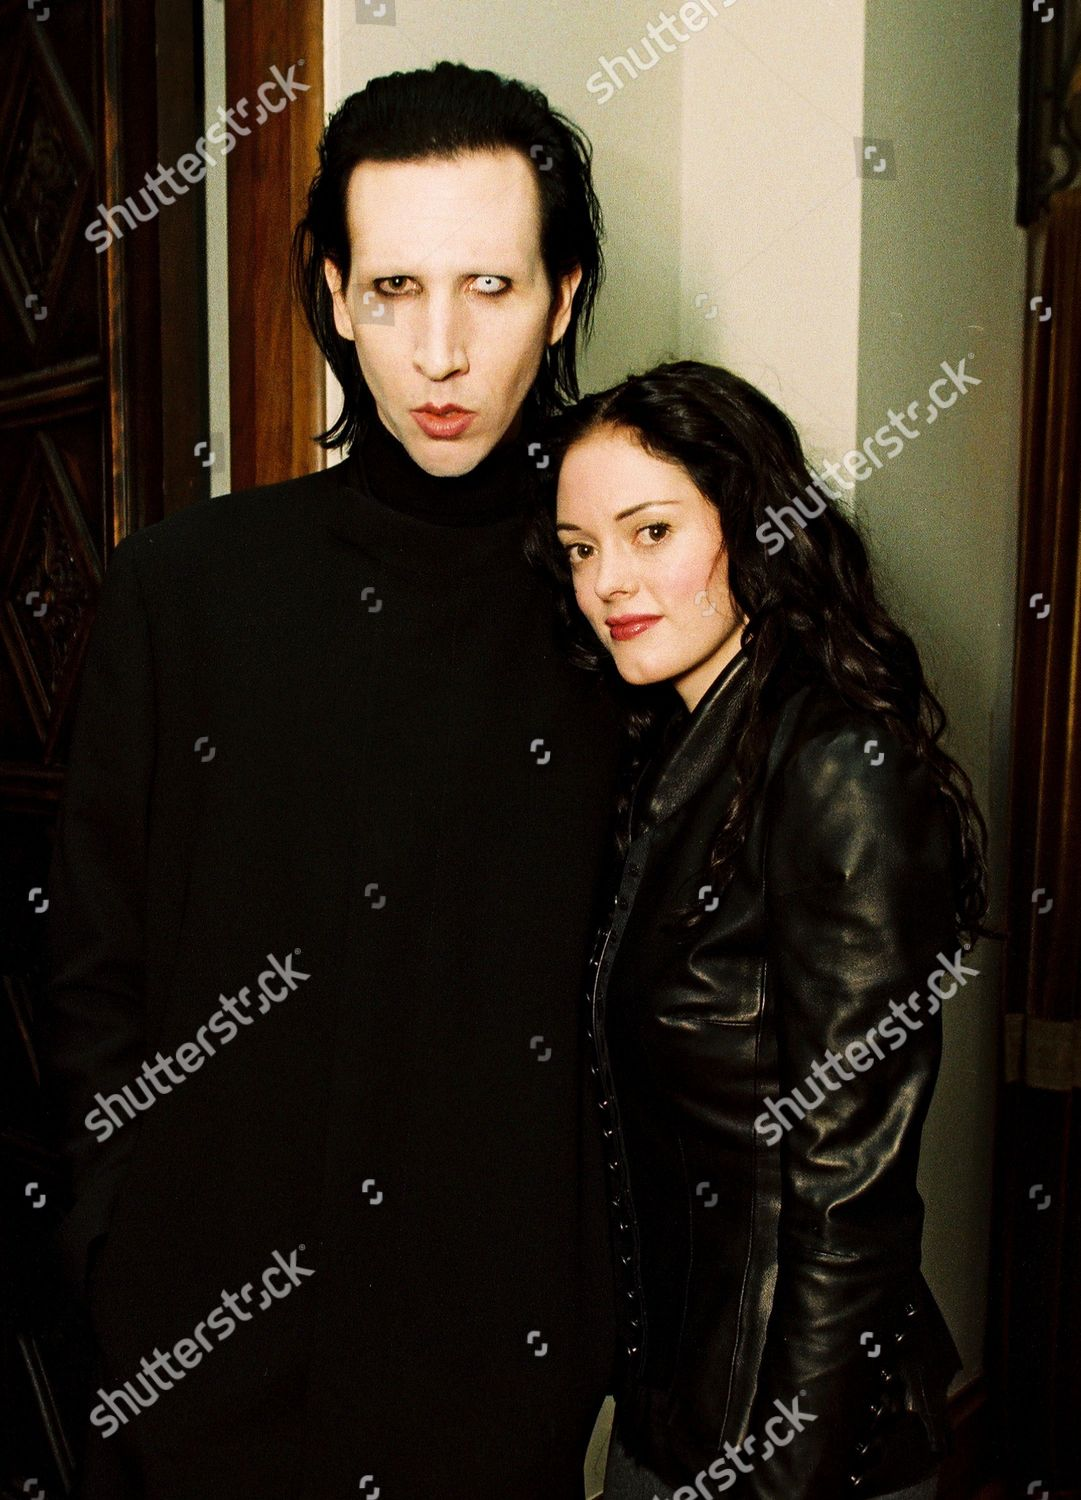 rose mcgowan und marilyn manson